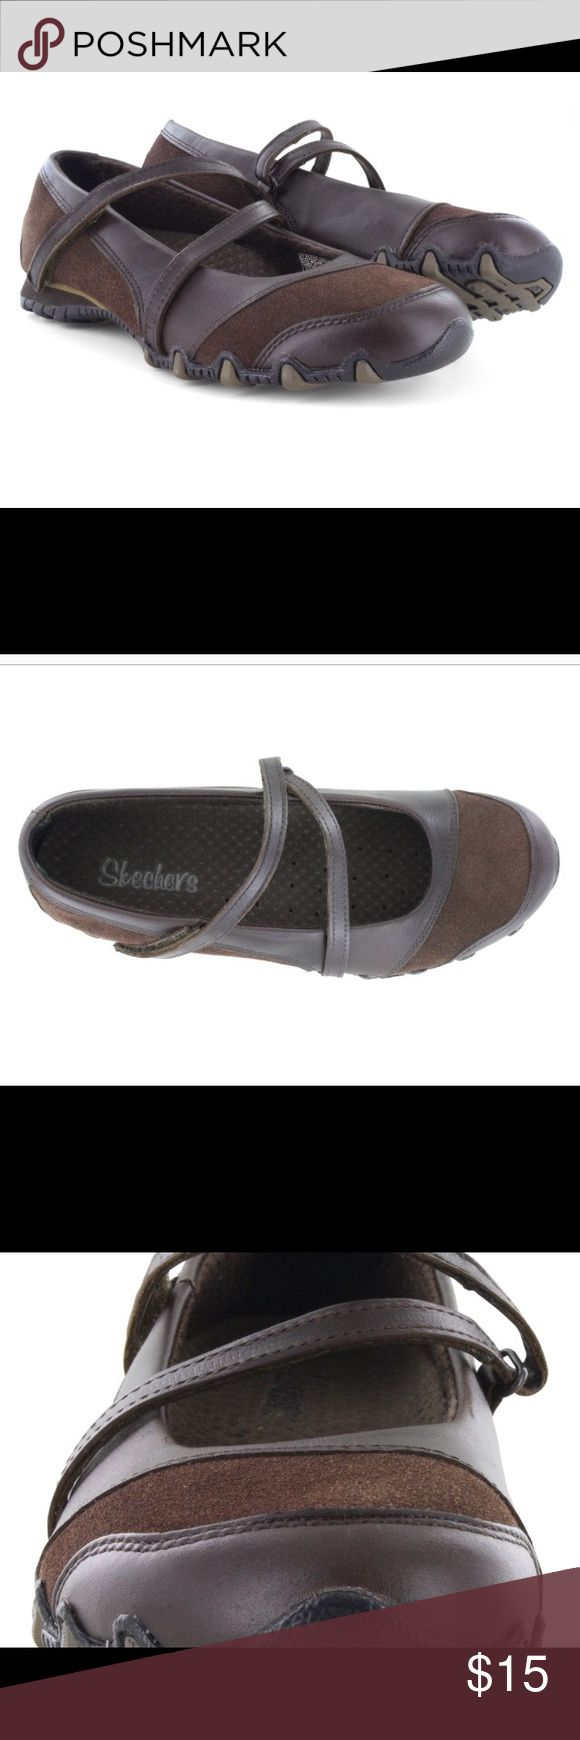 2253967ef skechers active shoes sale   OFF74% Discounted